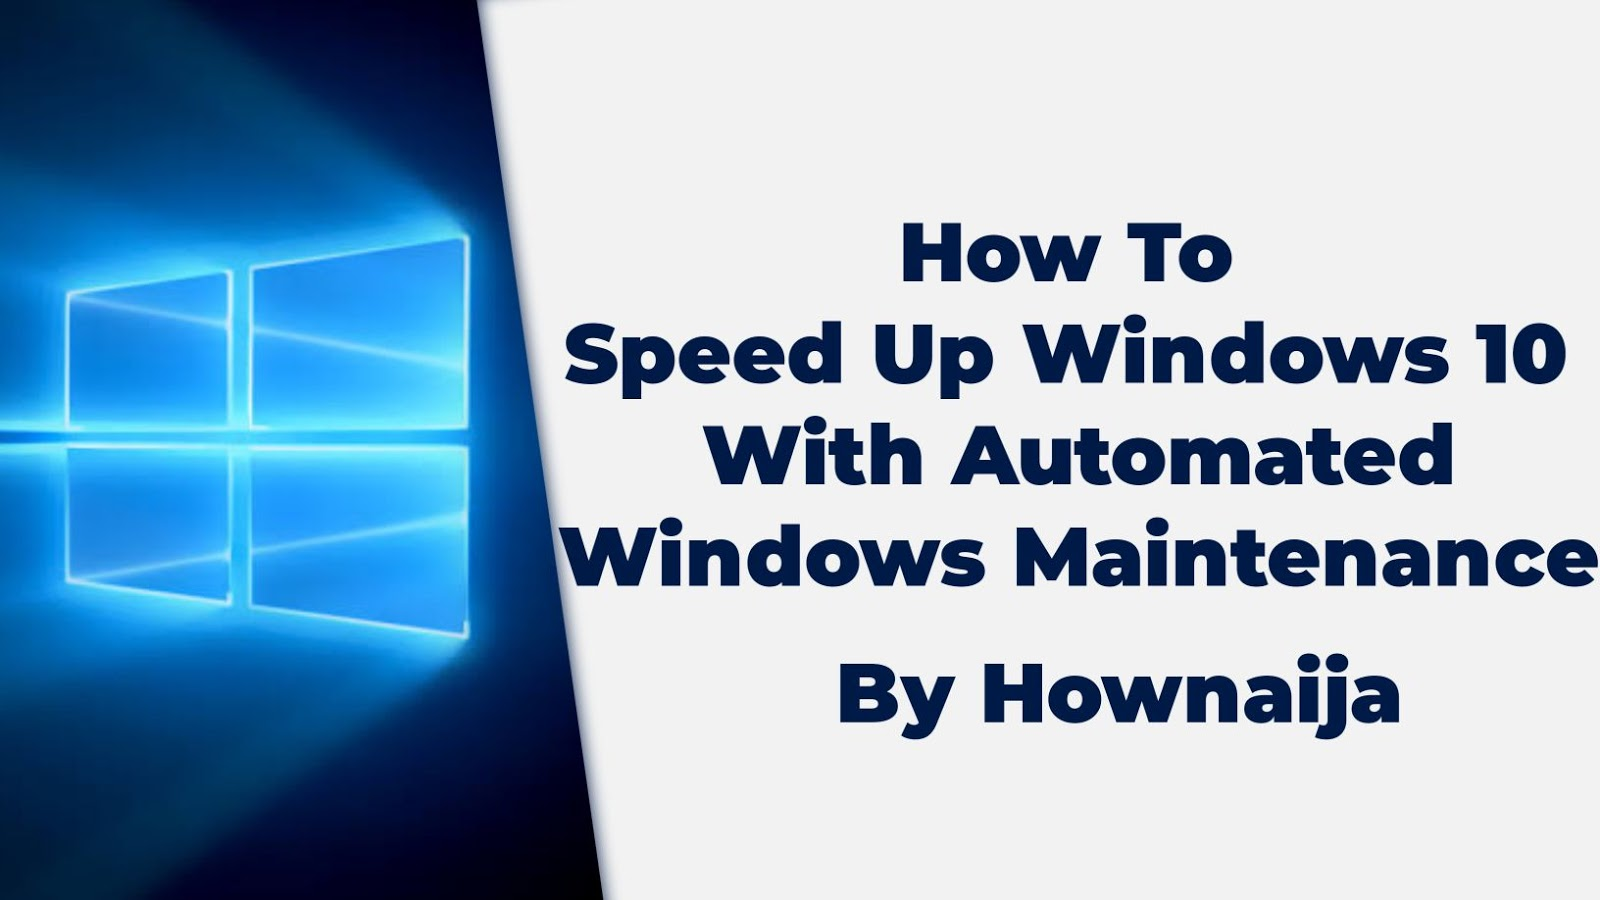 How To Speed Up Windows 10 With Automated Windows Maintenance